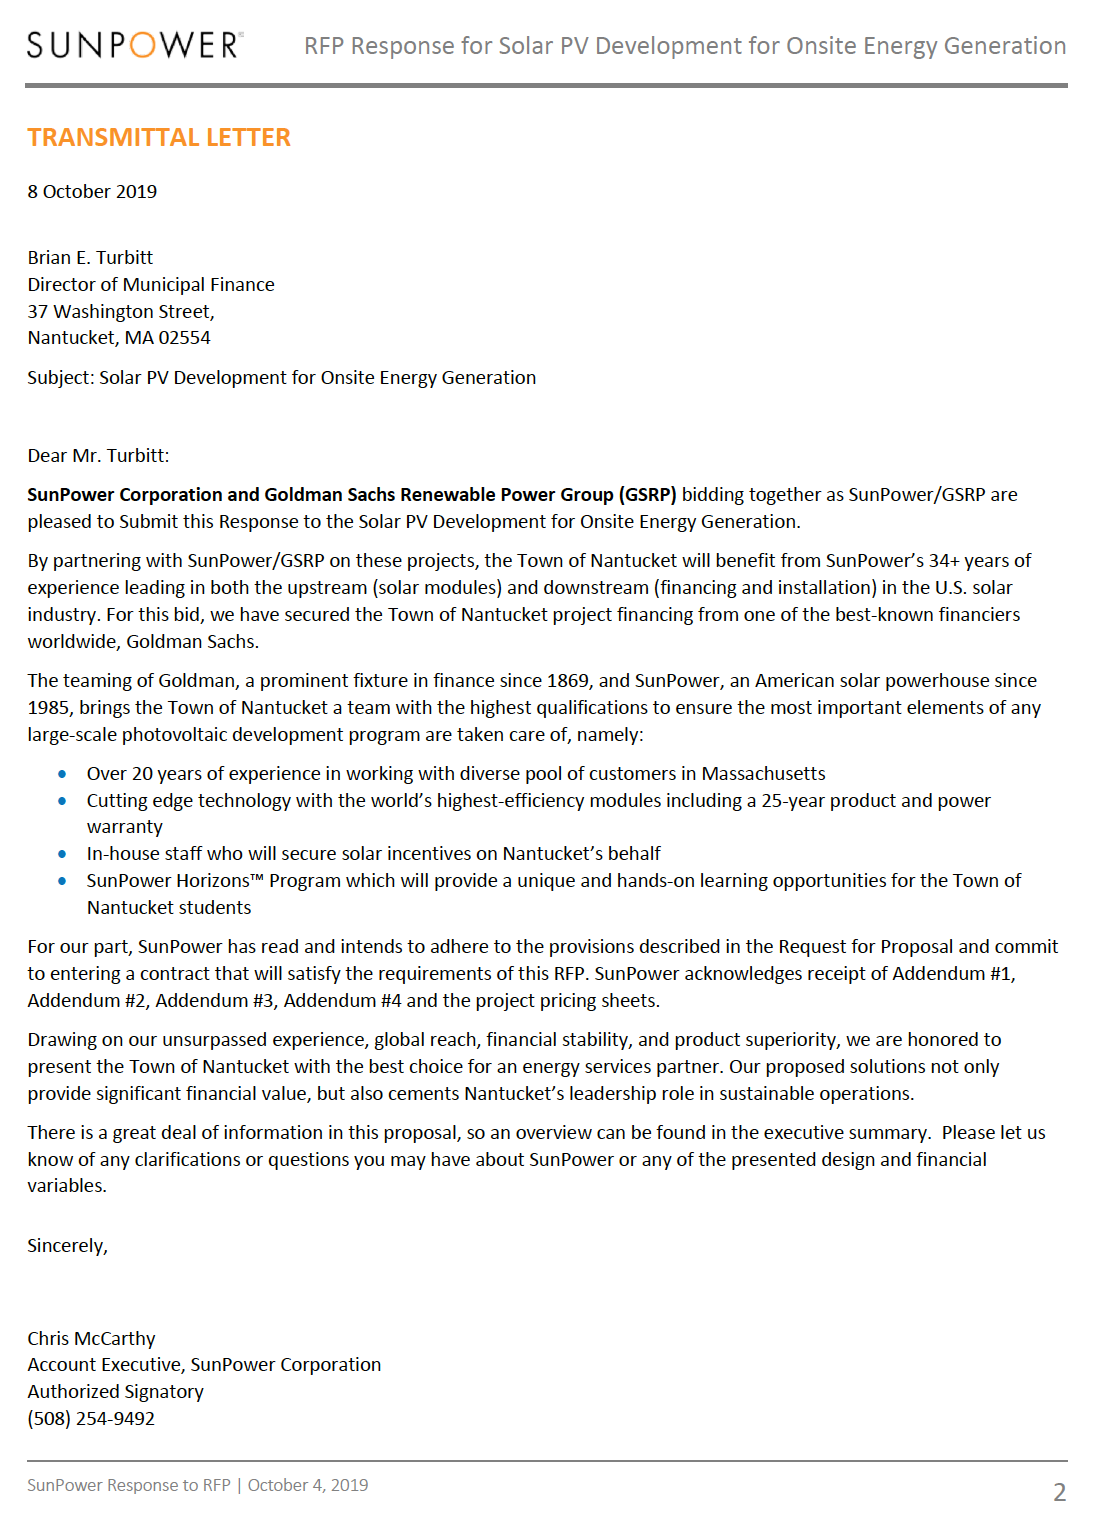 SunPower Bid Proposal Cover Letter Example